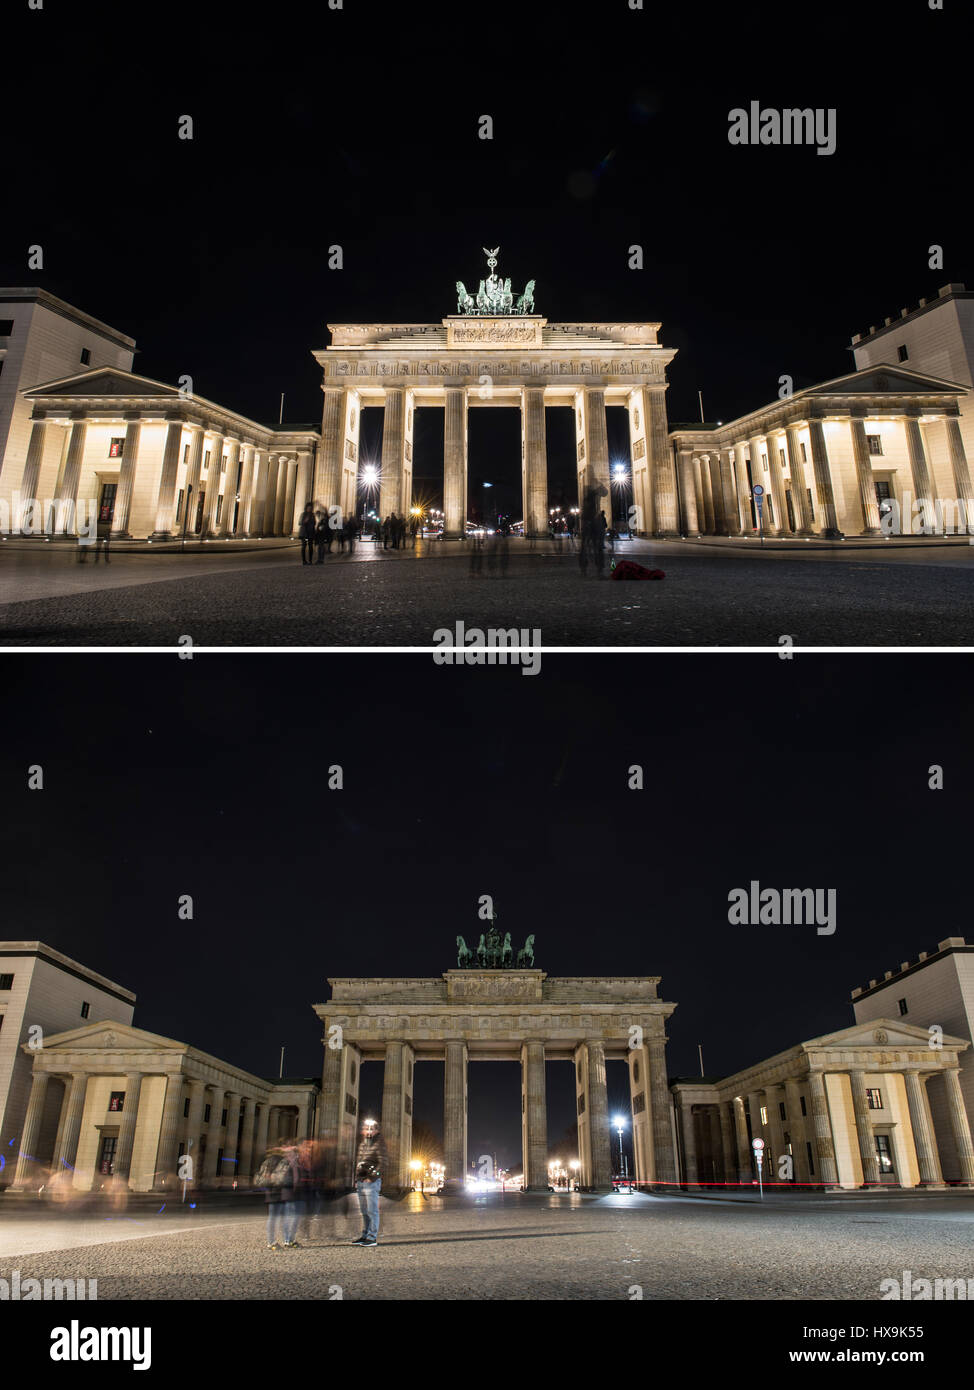 Berlin, Germany. 25th Mar, 2017. The combination picture shows the Brandenburg Gate lit up (above) and unlit (below) - Stock Image